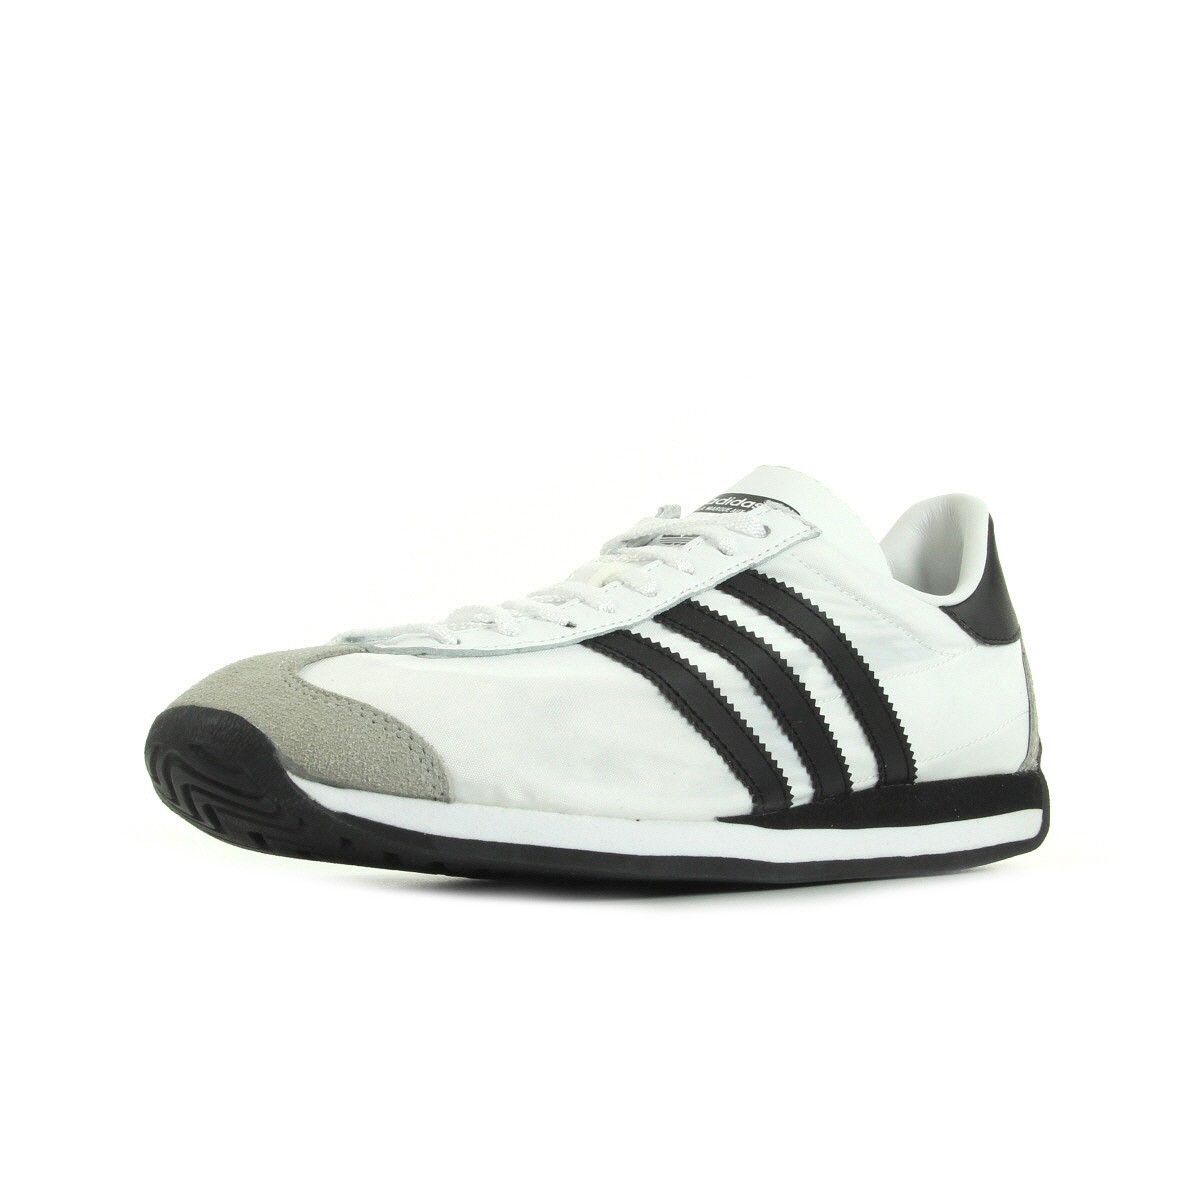 Adidas Chaussures Adidas Chaussures 70 Annees jSzLqUMGVp